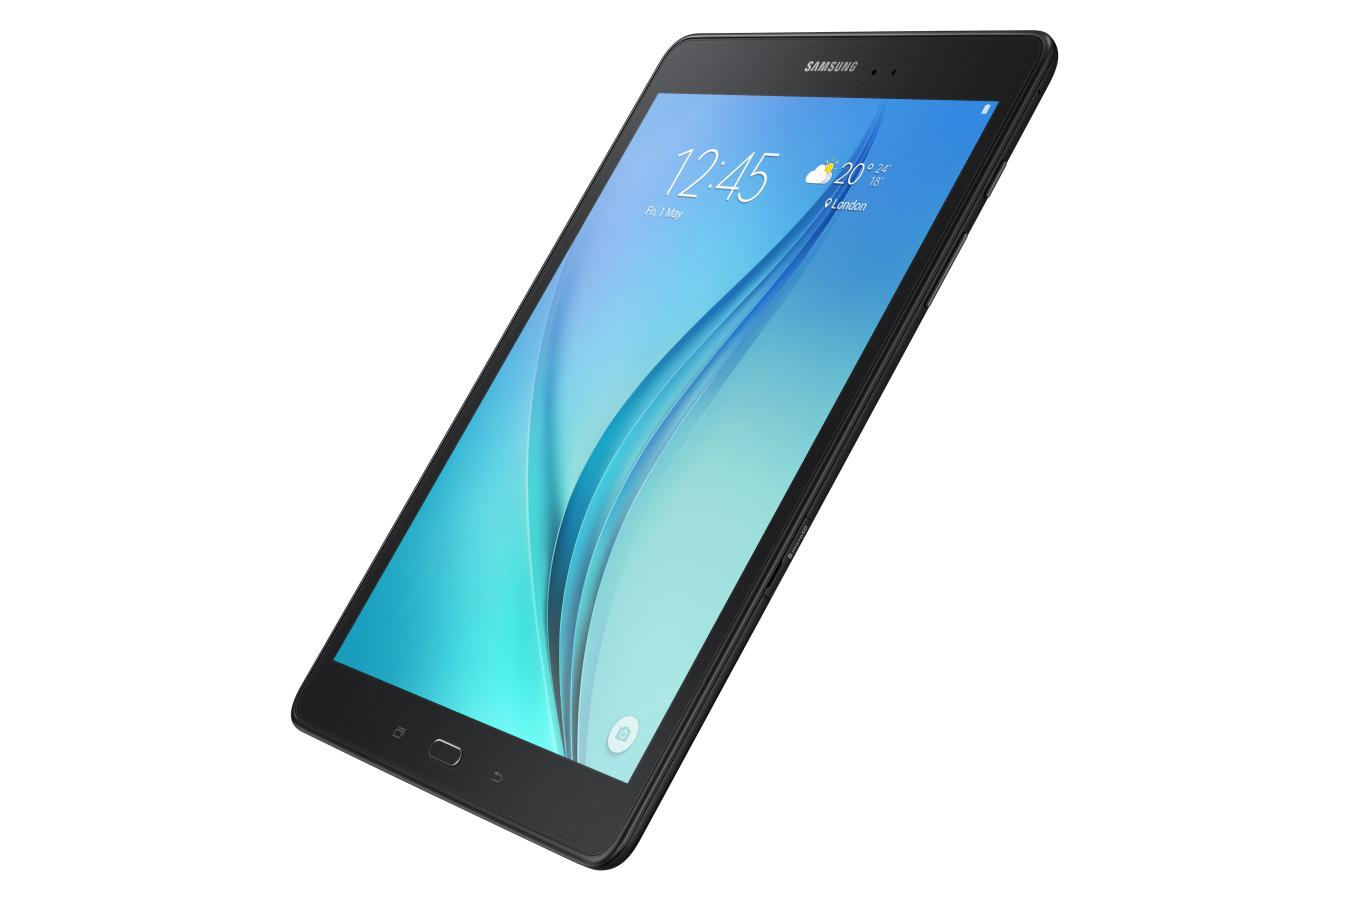 Tablet Samsung Galaxy Tab A 9.7 SM-T550 16GB wifi Black